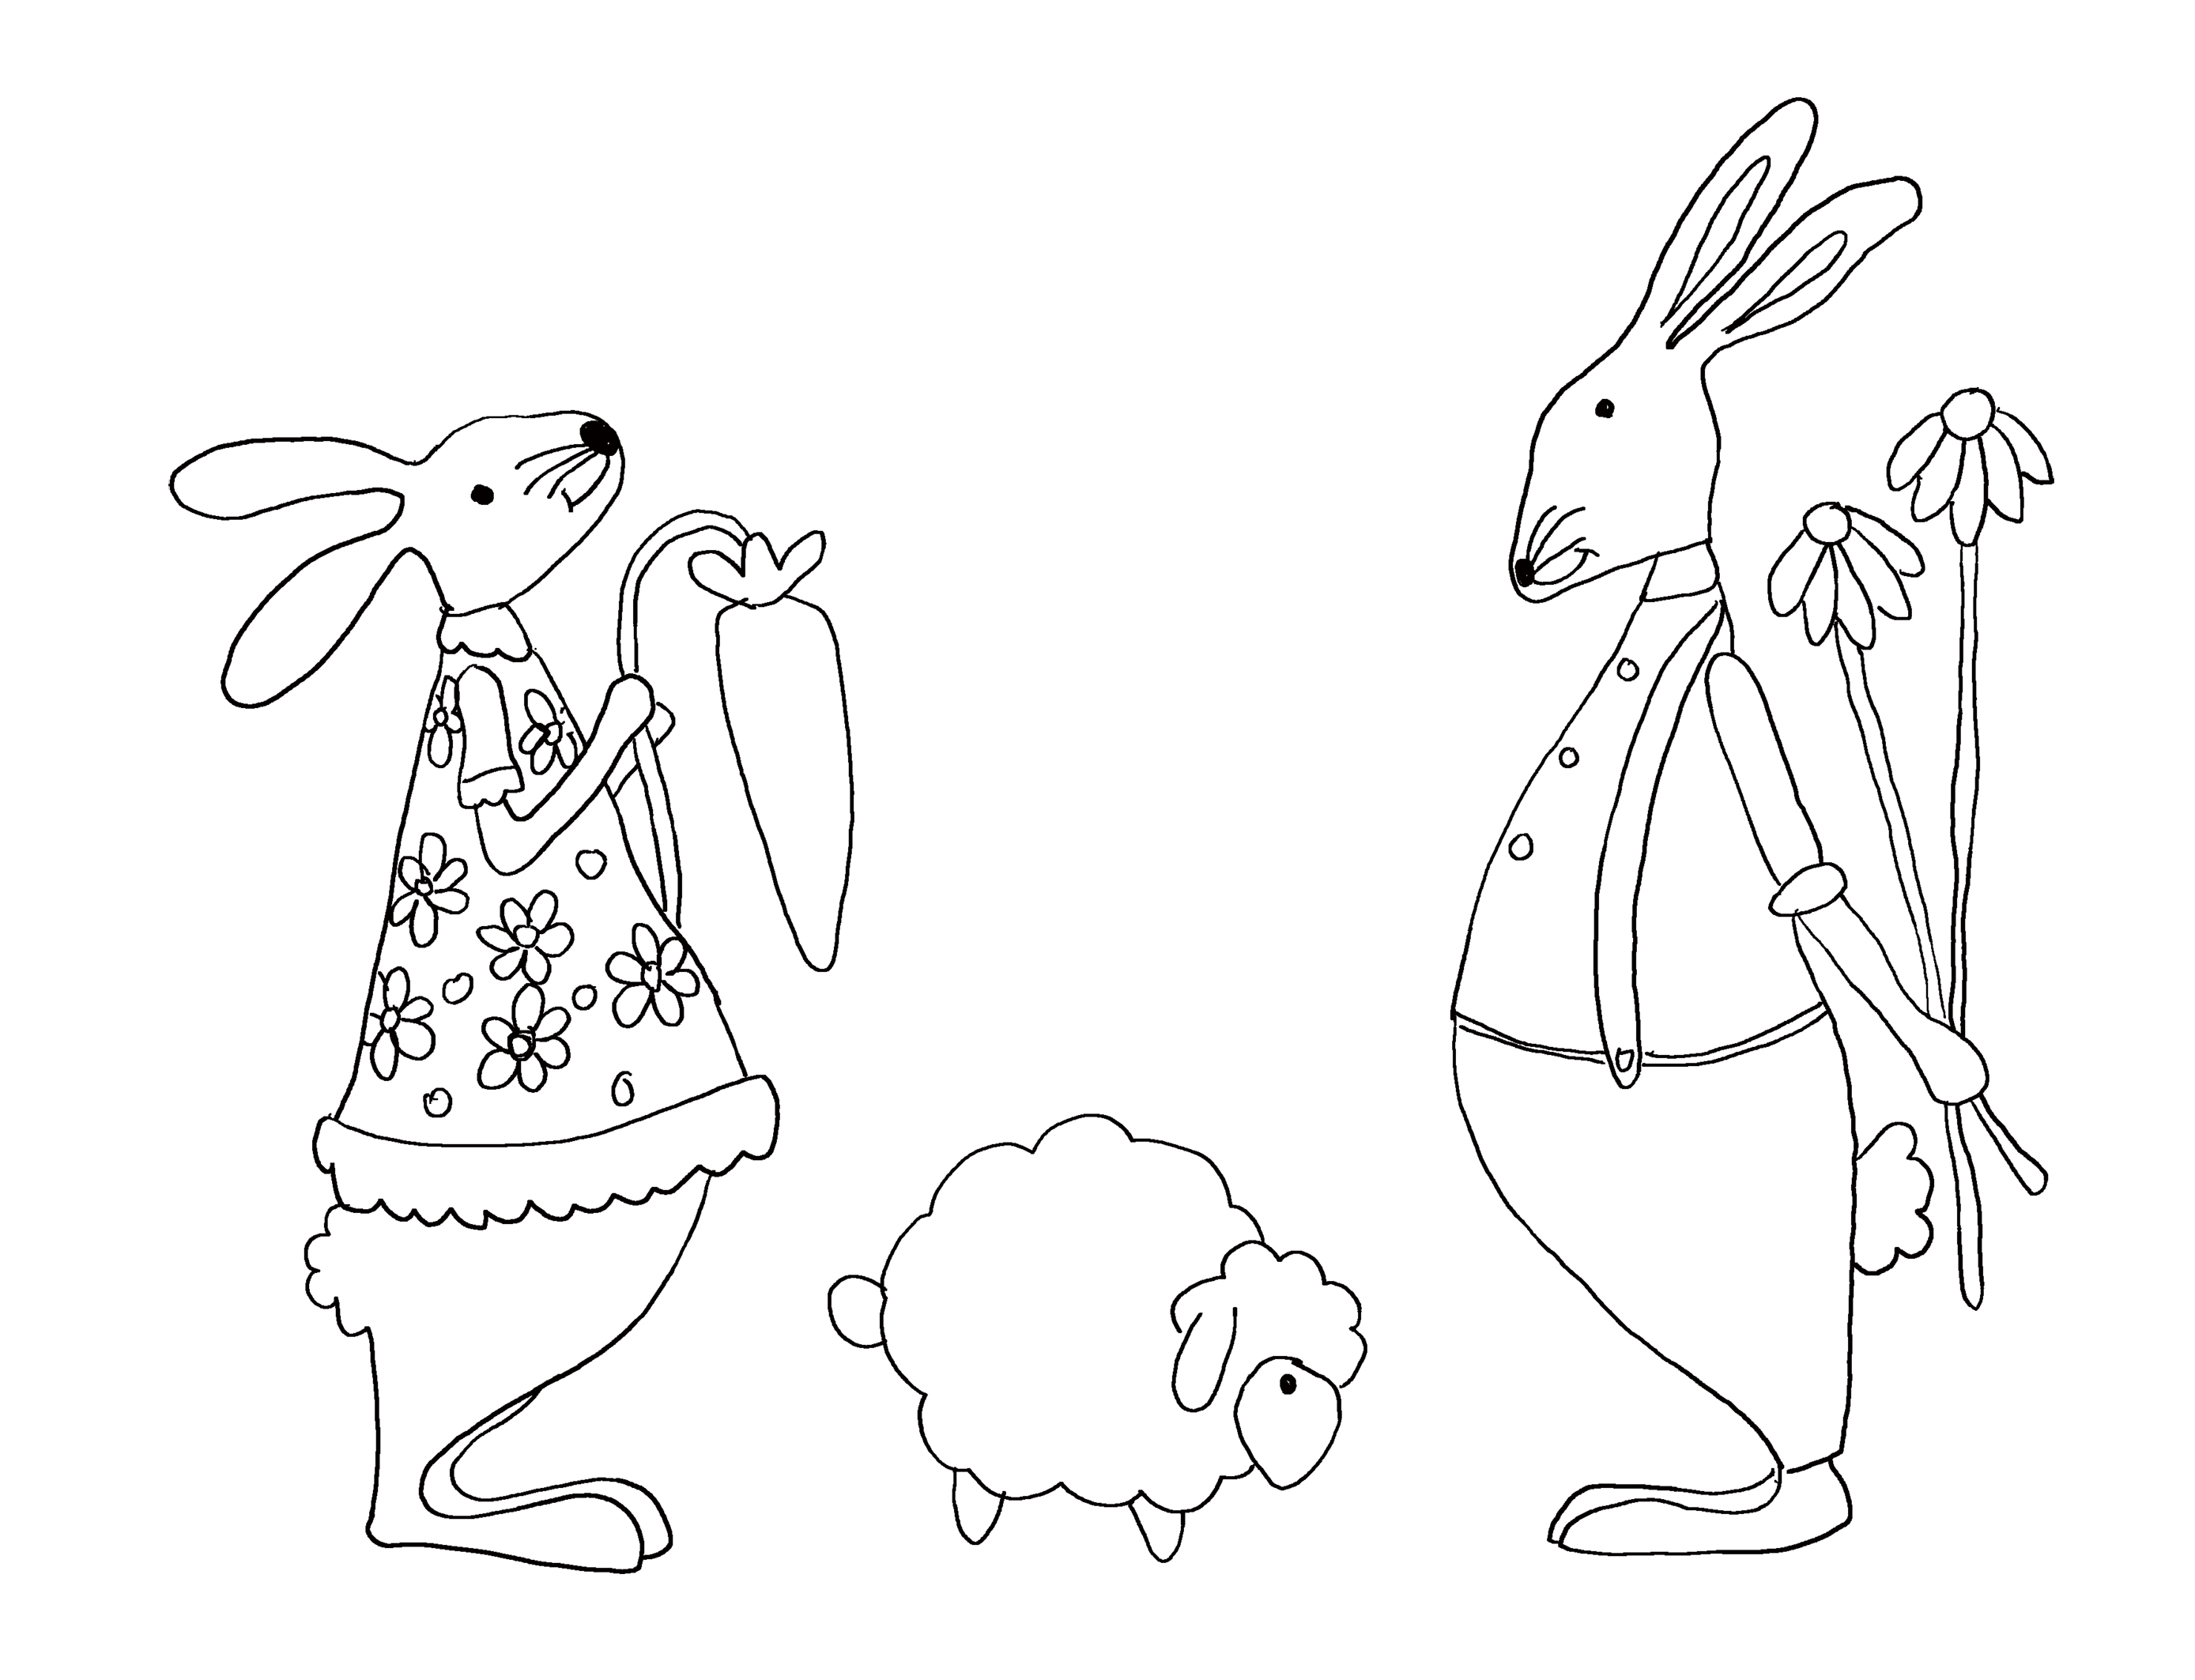 Cute coloring page for Easter with two bunnies and a lamb.